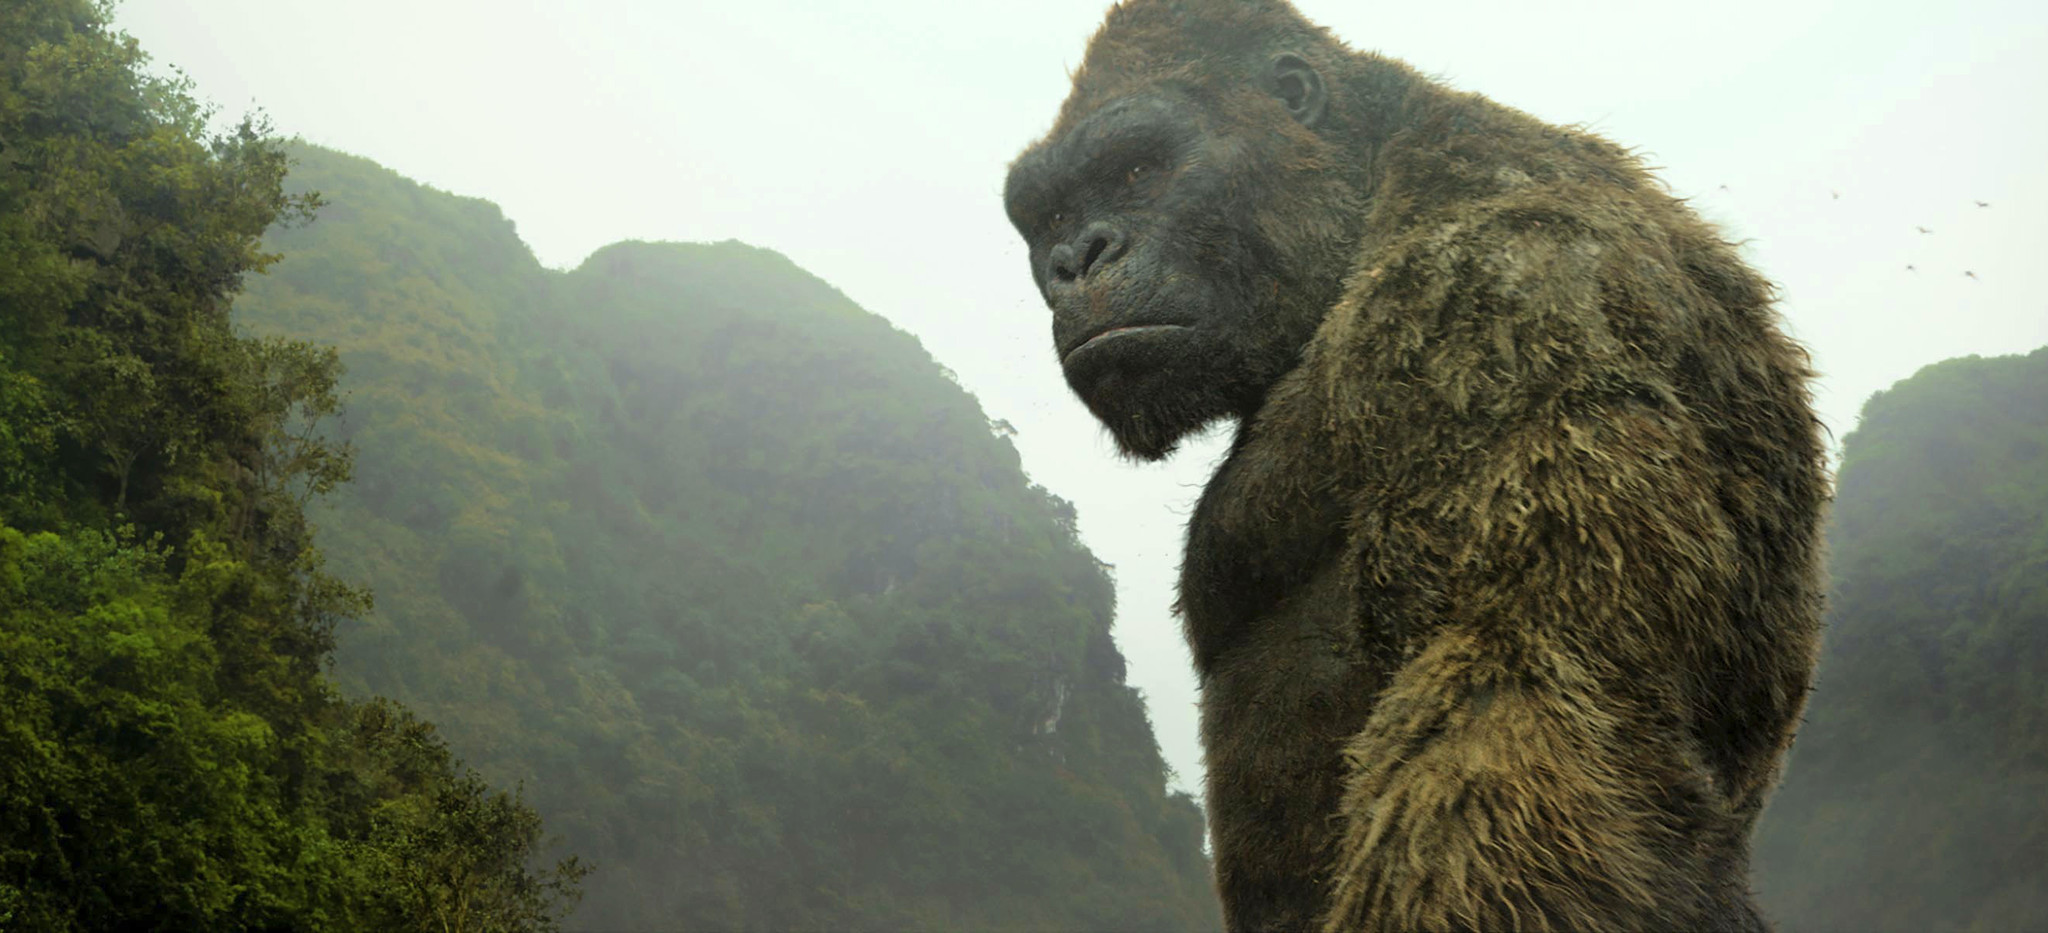 'Kong: Skull Island' review: Big budget buys dazzling effects and a really good movie too